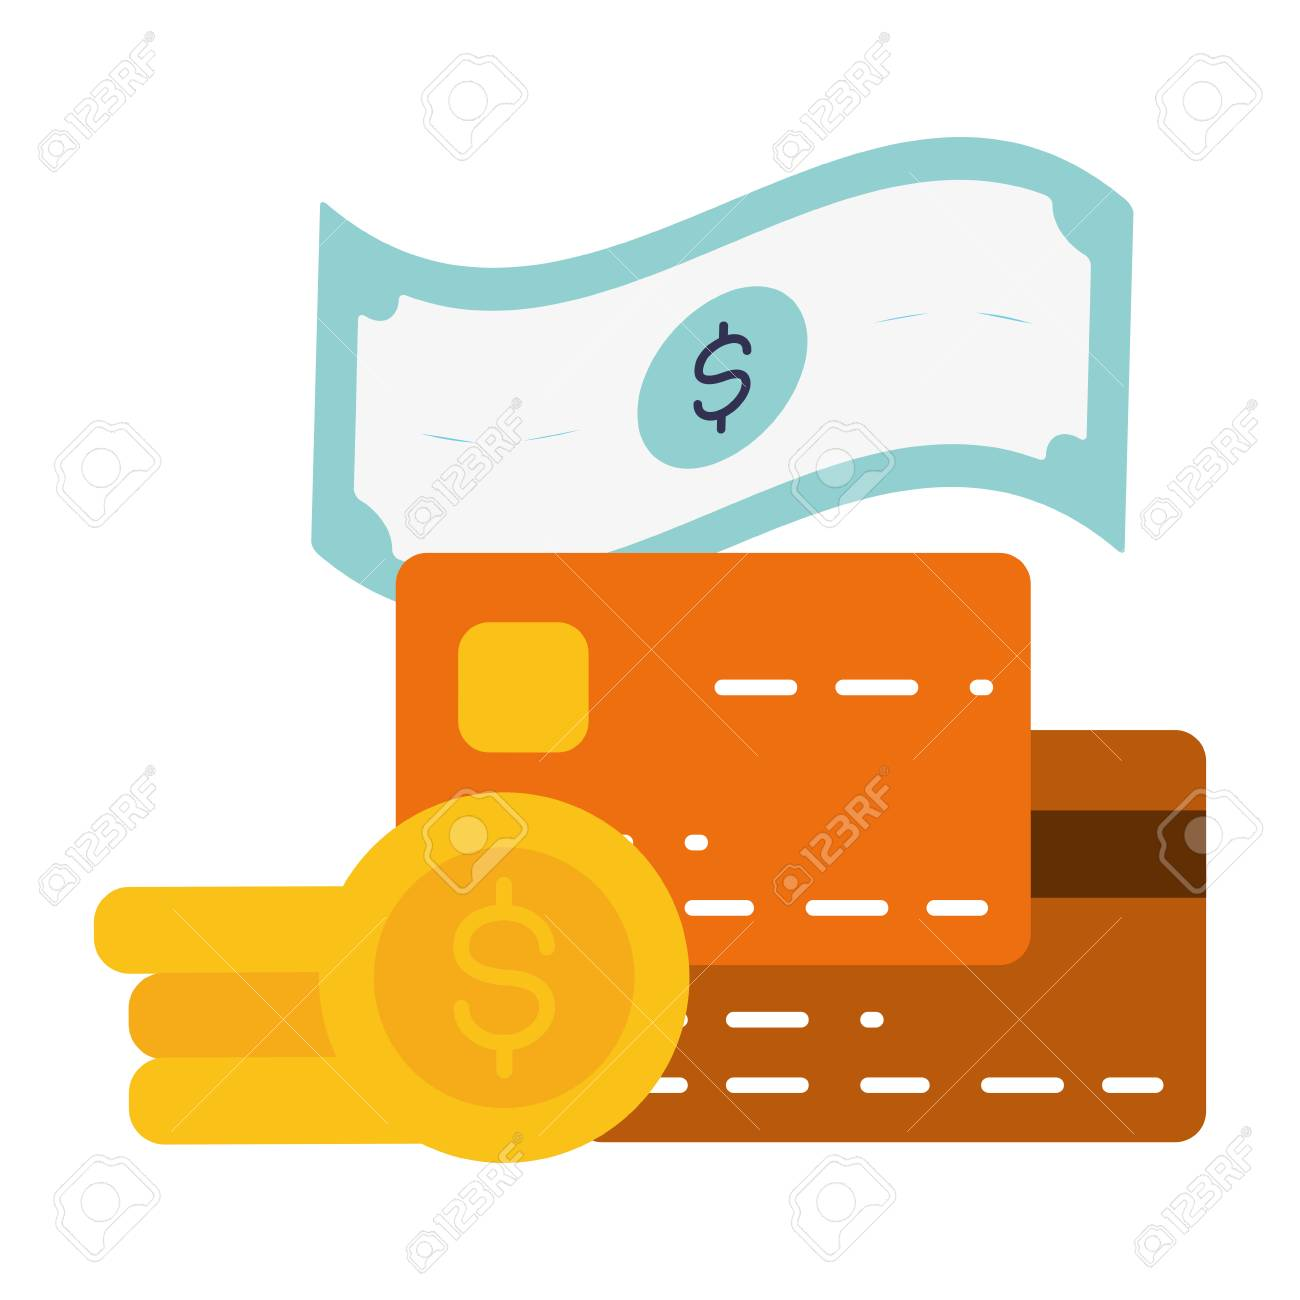 Bank Cards Money Online Banking Vector Illustration Royalty Free Cliparts Vectors And Stock Illustration Image 123057958